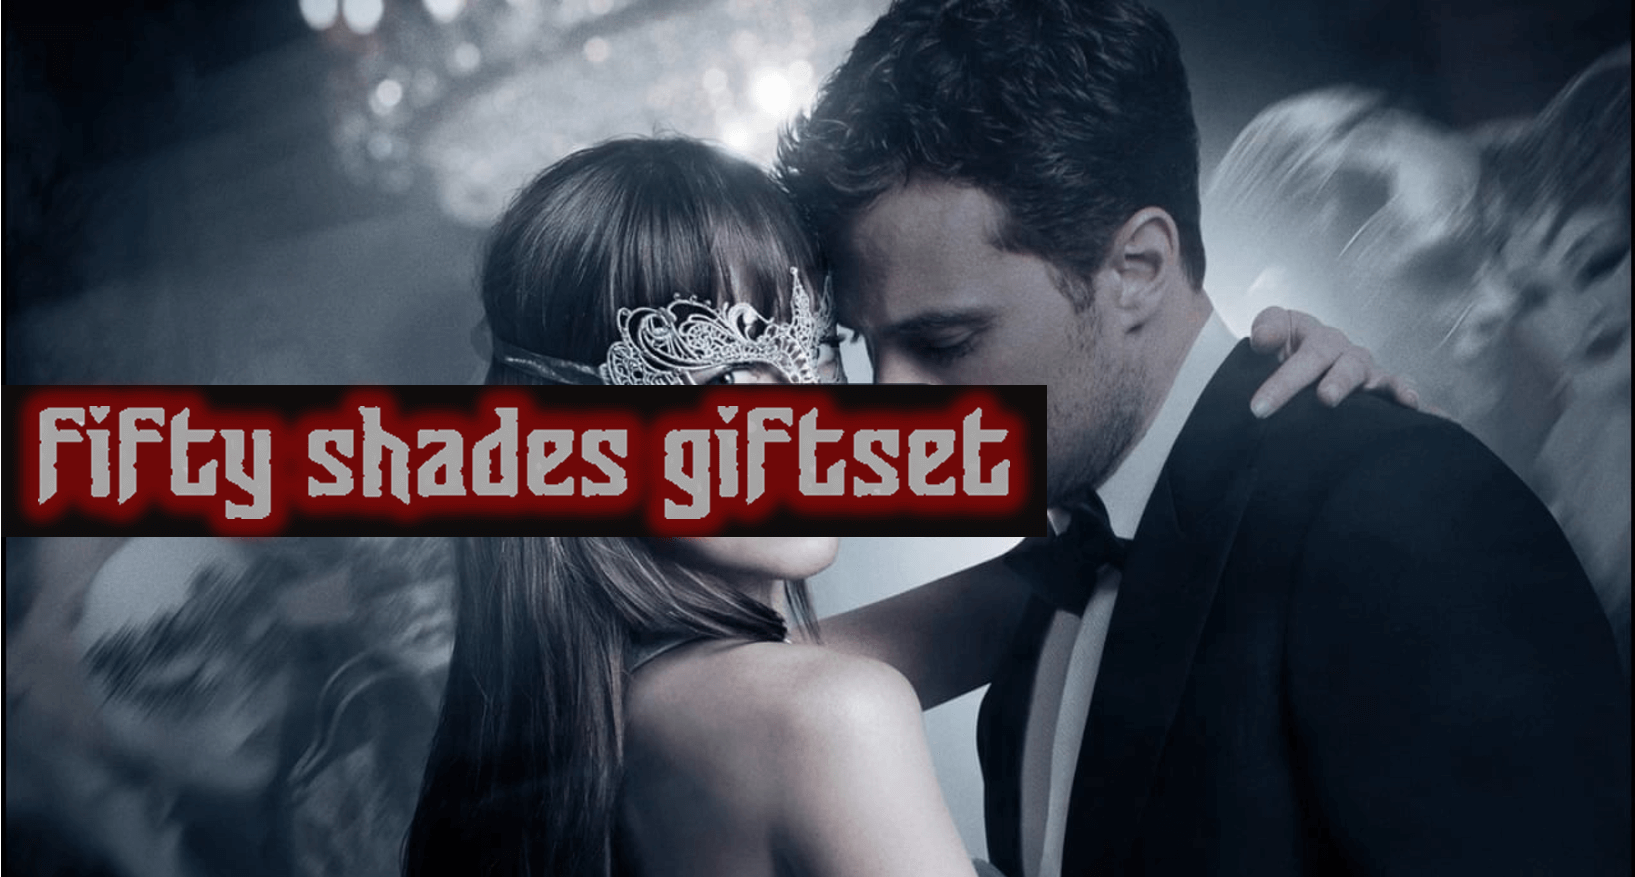 Your chance to win this epic bundle of 50 Shades Darker goodies including soundtrack, party game, chocolates and yankee candle set